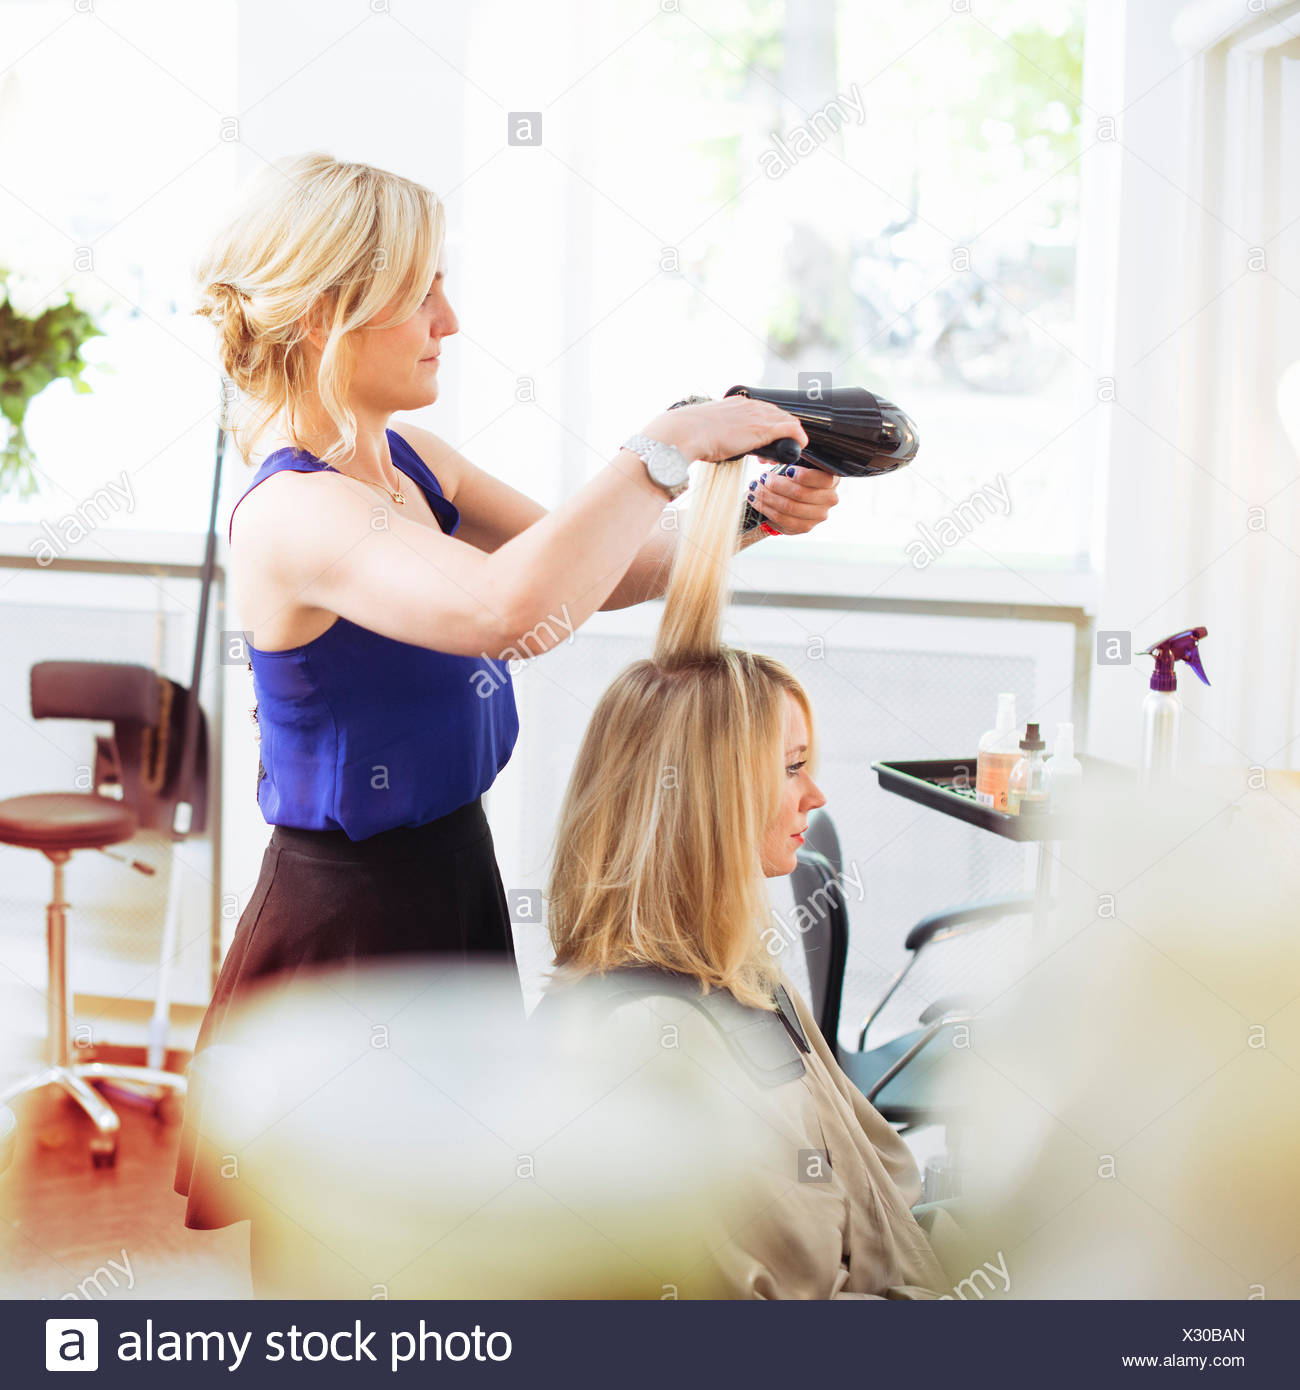 Hair Dryer Stock Photos Amp Hair Dryer Stock Images Alamy